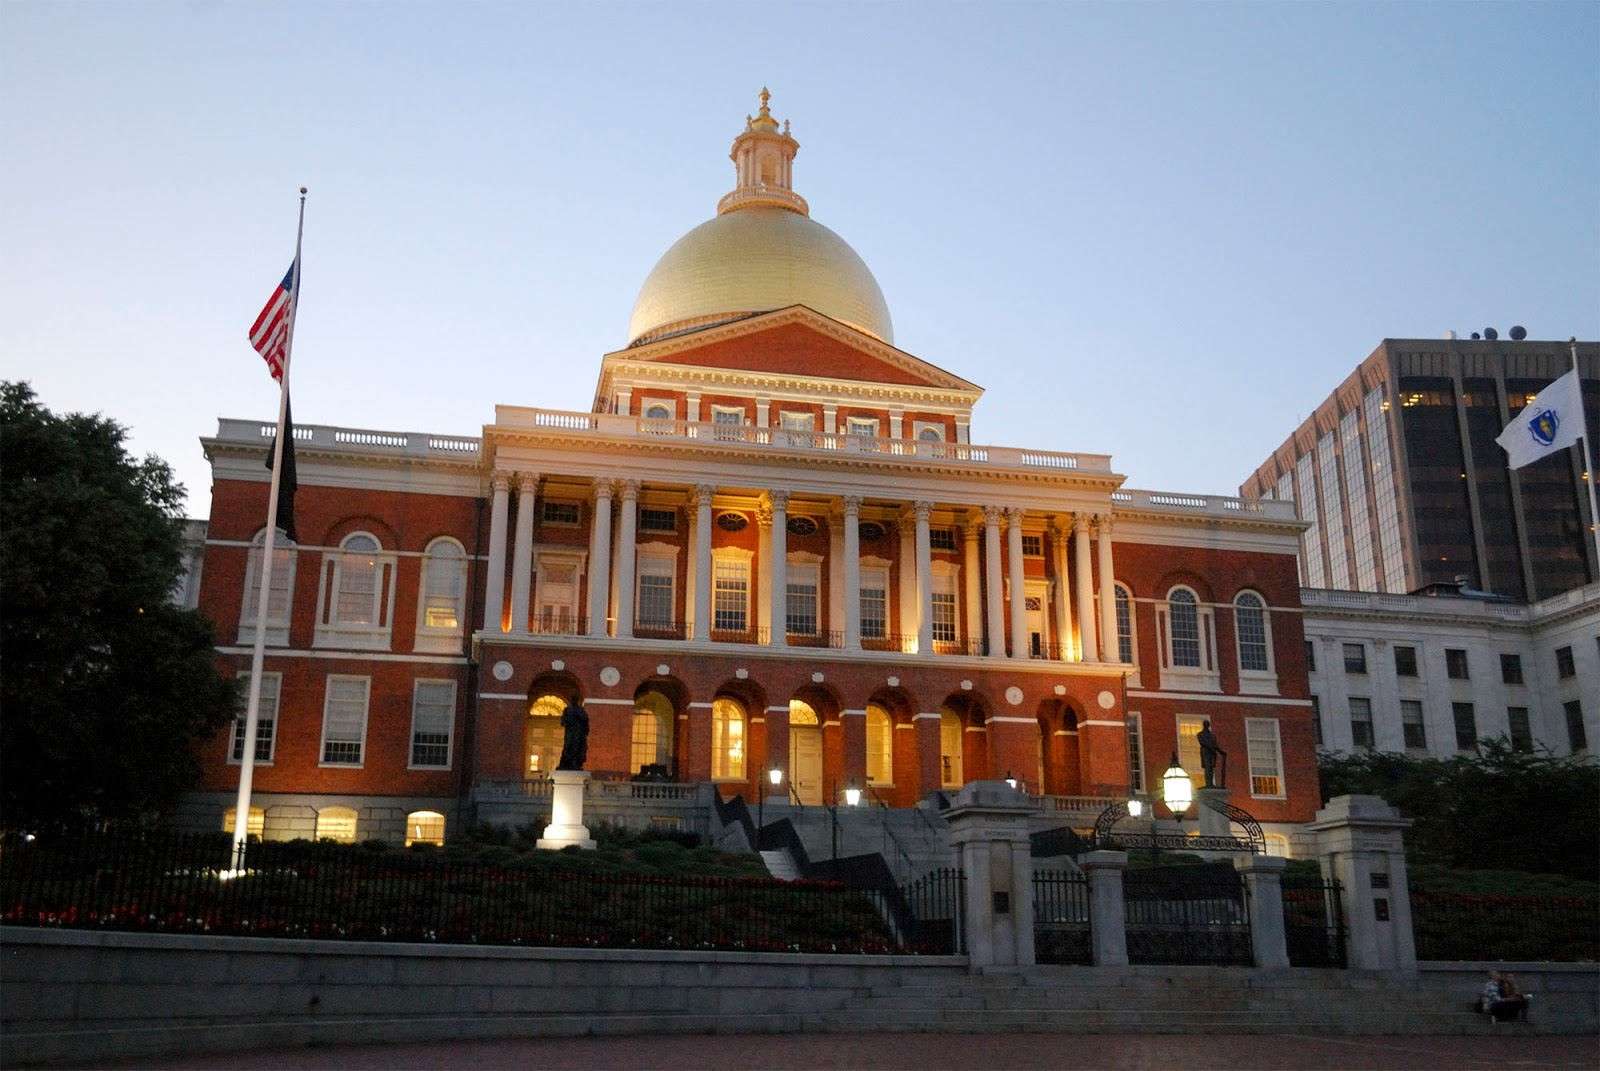 boston sunset state house freedom trail map itinerary plan guide tourism usa america park east coast